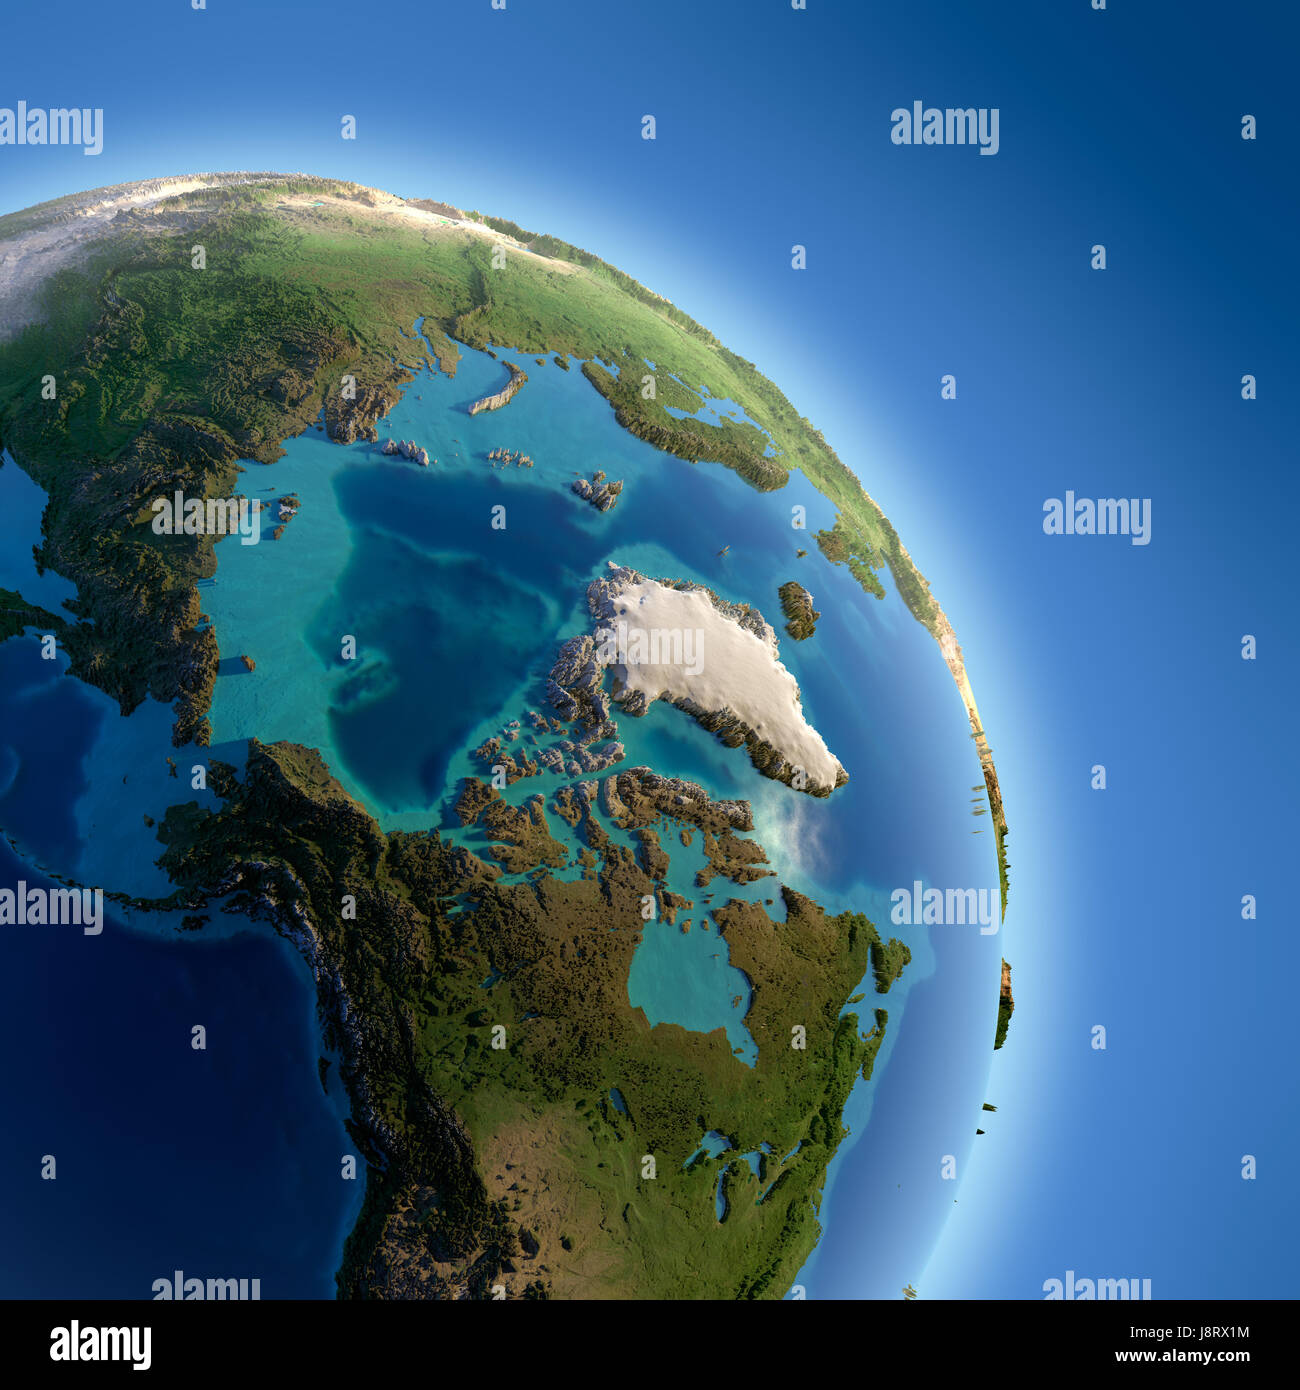 Space sunlight globe planet earth world map atlas map of the space sunlight globe planet earth world map atlas map of the world gumiabroncs Image collections